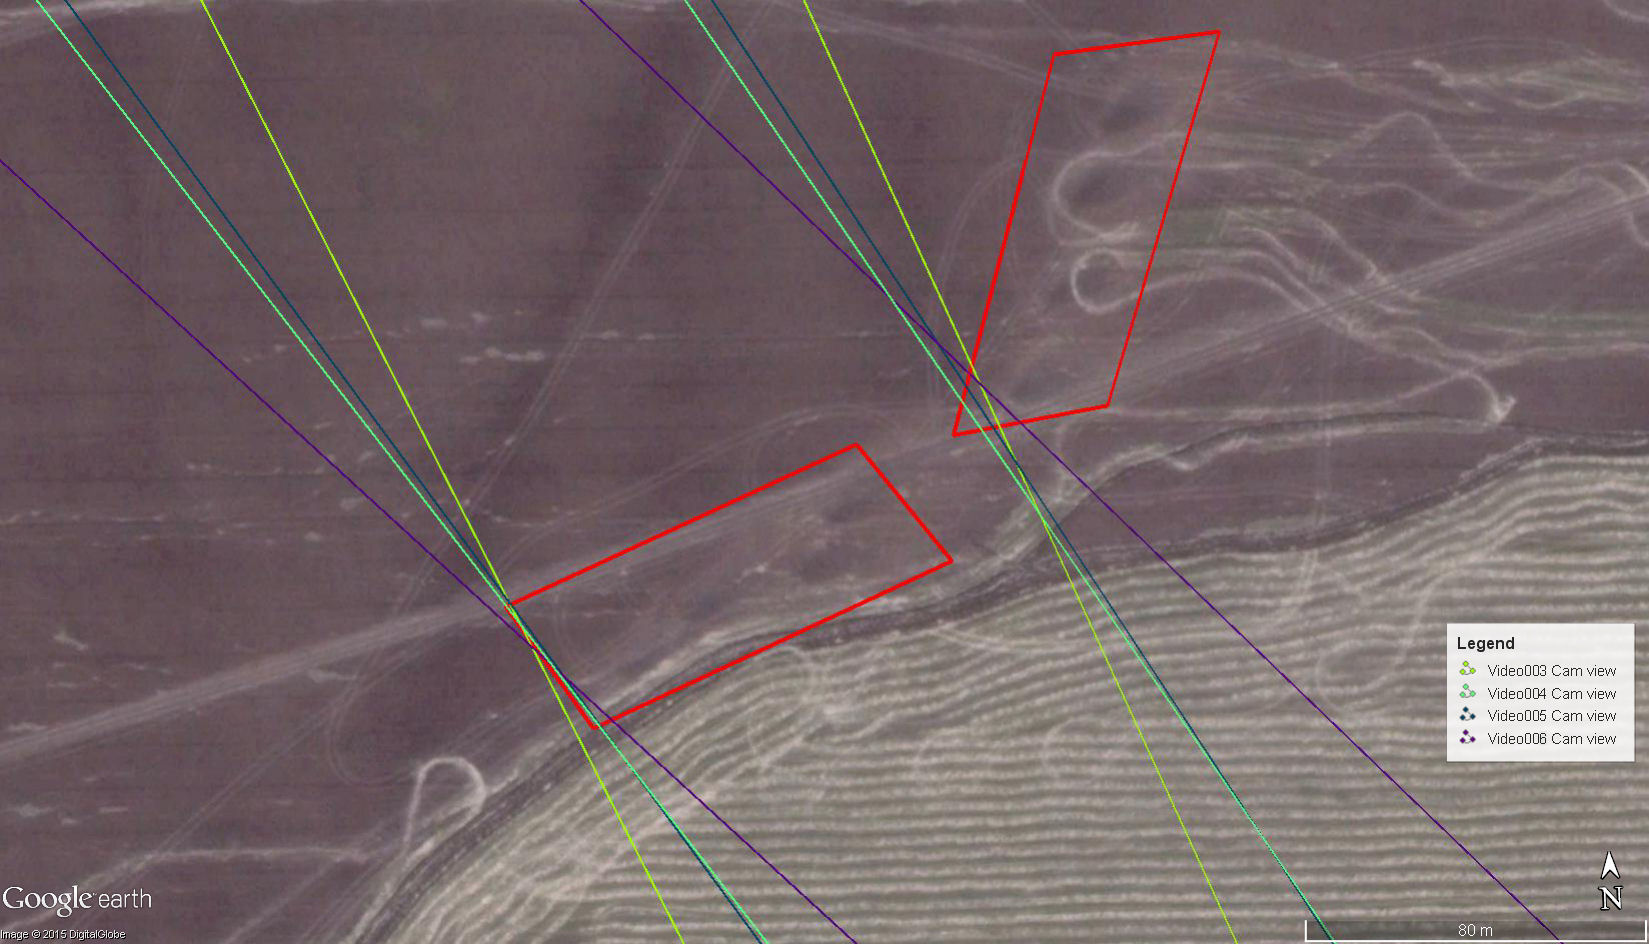 The intersection of viewing directions and the location of Grad firing positions